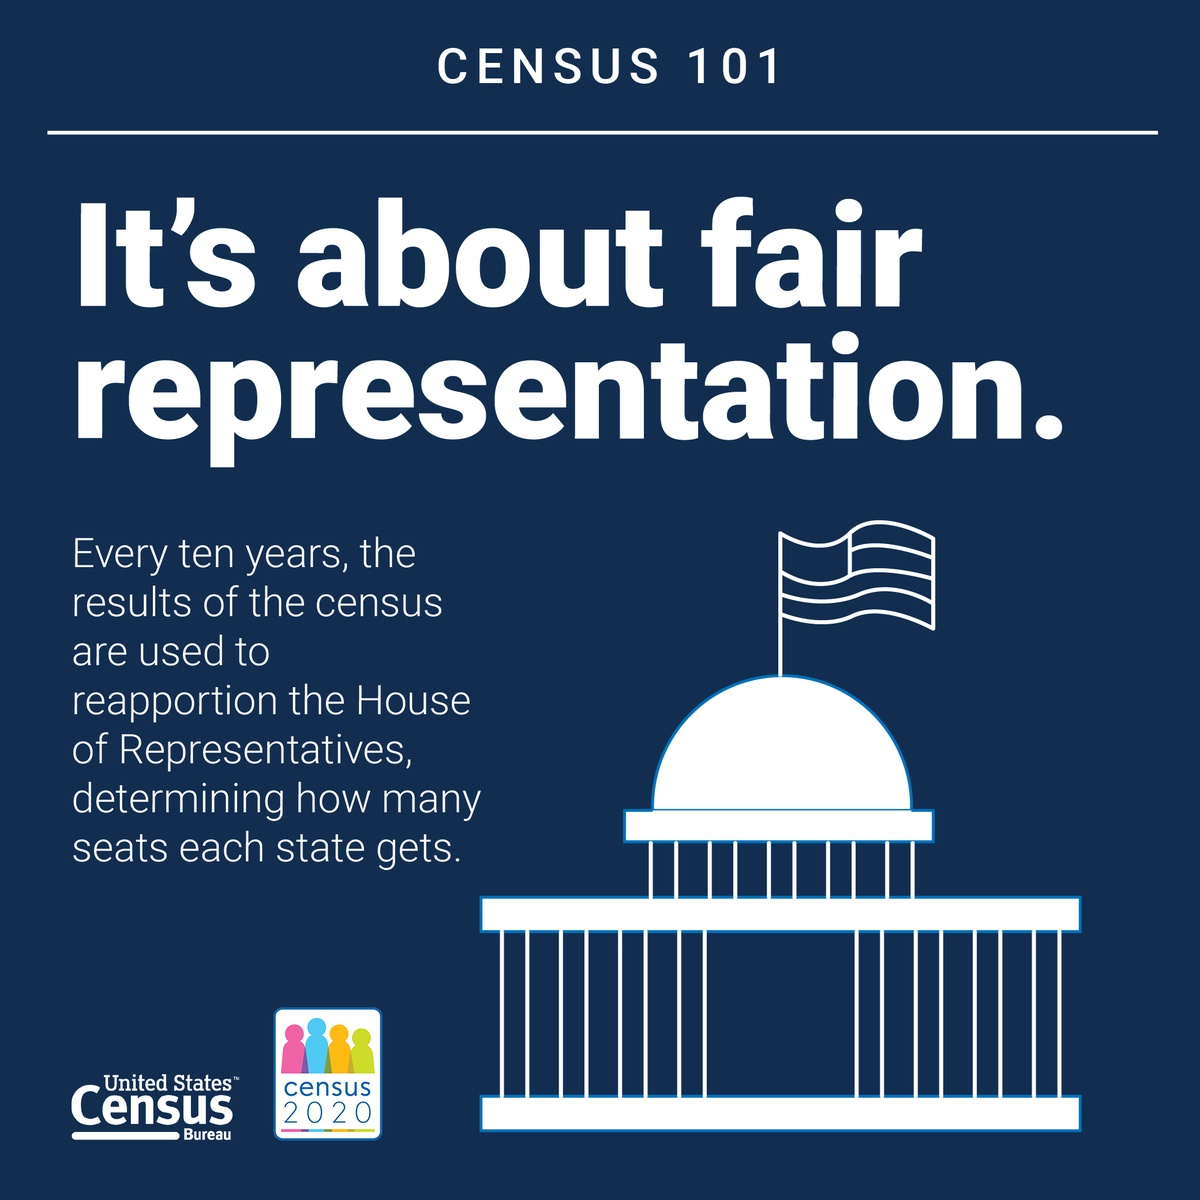 Bureau County Fair 2020.Hidalgo County 2020 Census On Twitter It S About Fair